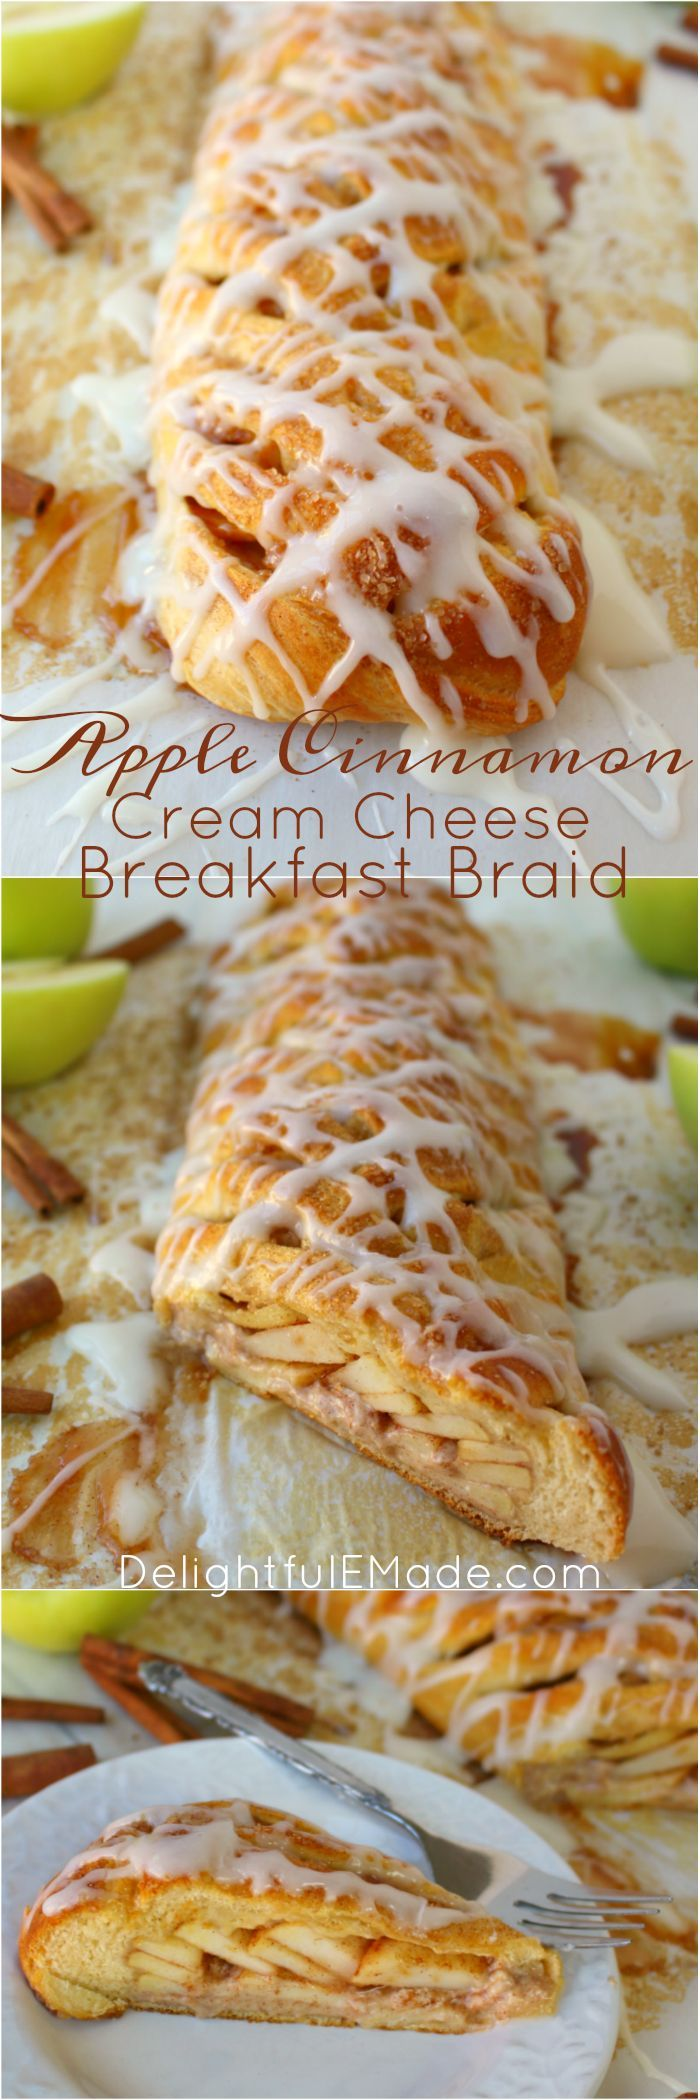 The perfect breakfast pastry for fall!  Fresh apples, cinnamon, cream cheese and a refrigerated crescent sheet come together to make the most wonderful breakfast treat that your entire family will love.  Super easy to make, and it will look and taste like